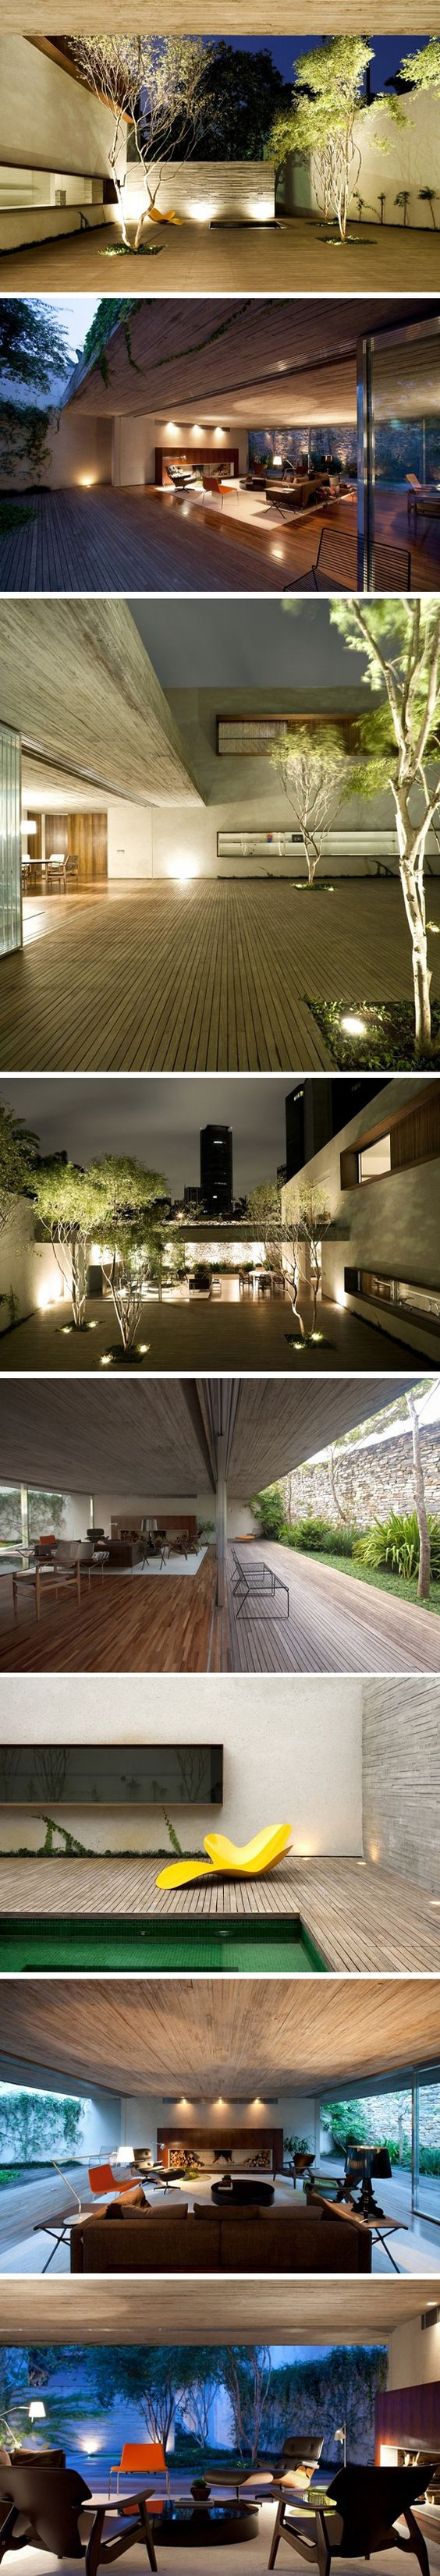 Chimney House by Marcio Kogan – Studio MK27. Sao Paulo. Love elongated one level homes with adjoinable spaces